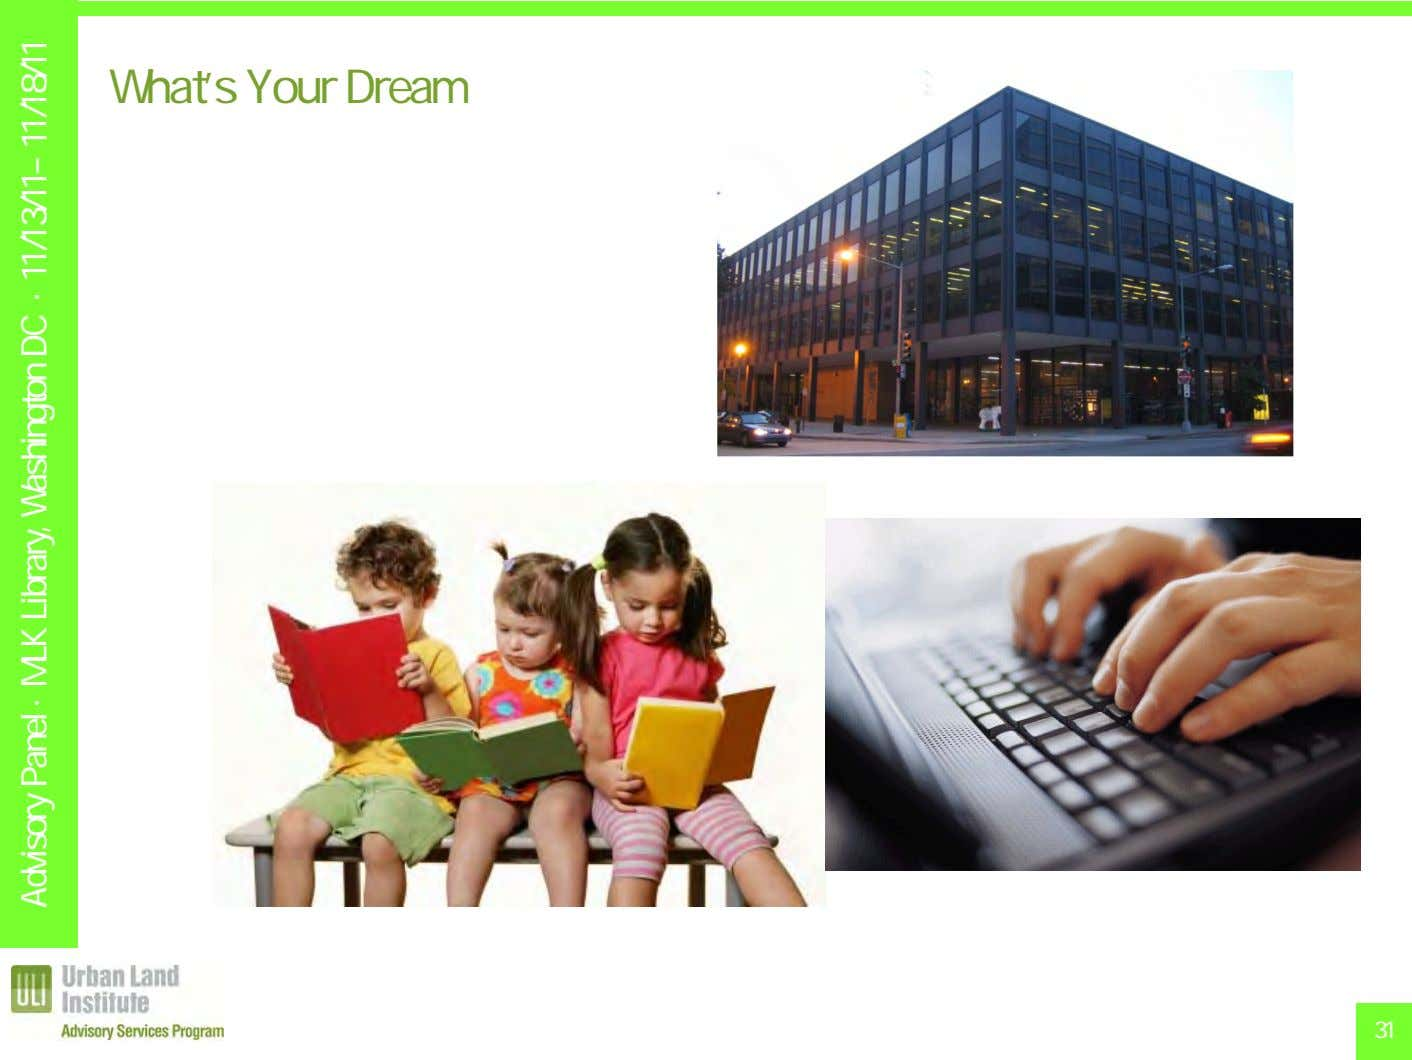 What's Your Dream 31 Advisory Panel · MLK Library, Washington DC · 11/13/11– 11/18/11